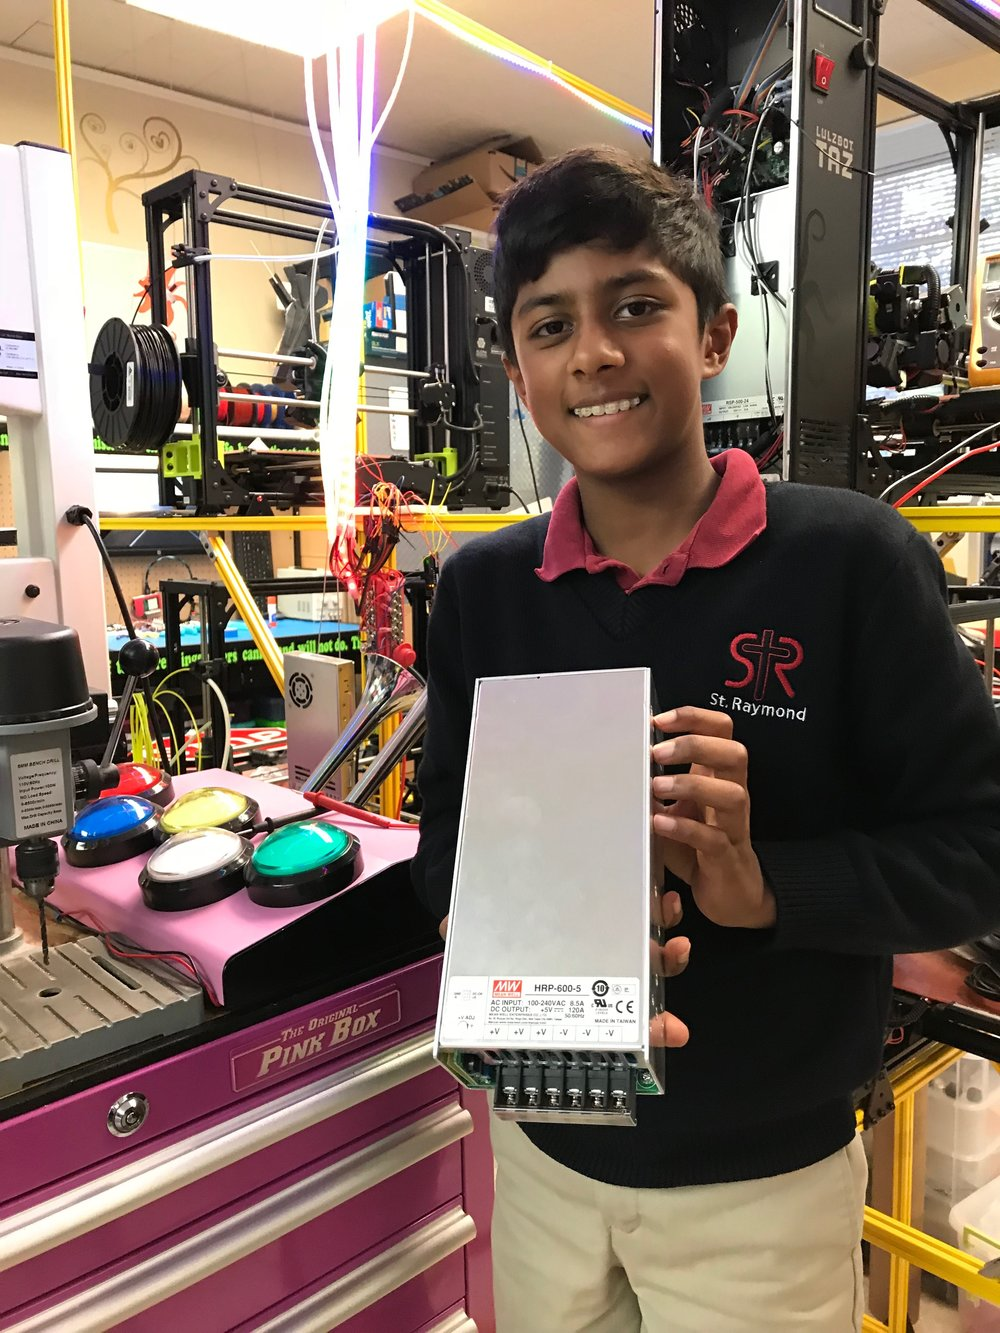 A proud 6th grade student holds up a Meanwell 60Amp power supply before installation in the St. Raymond Makerspace without adult help (but with adult supervision)